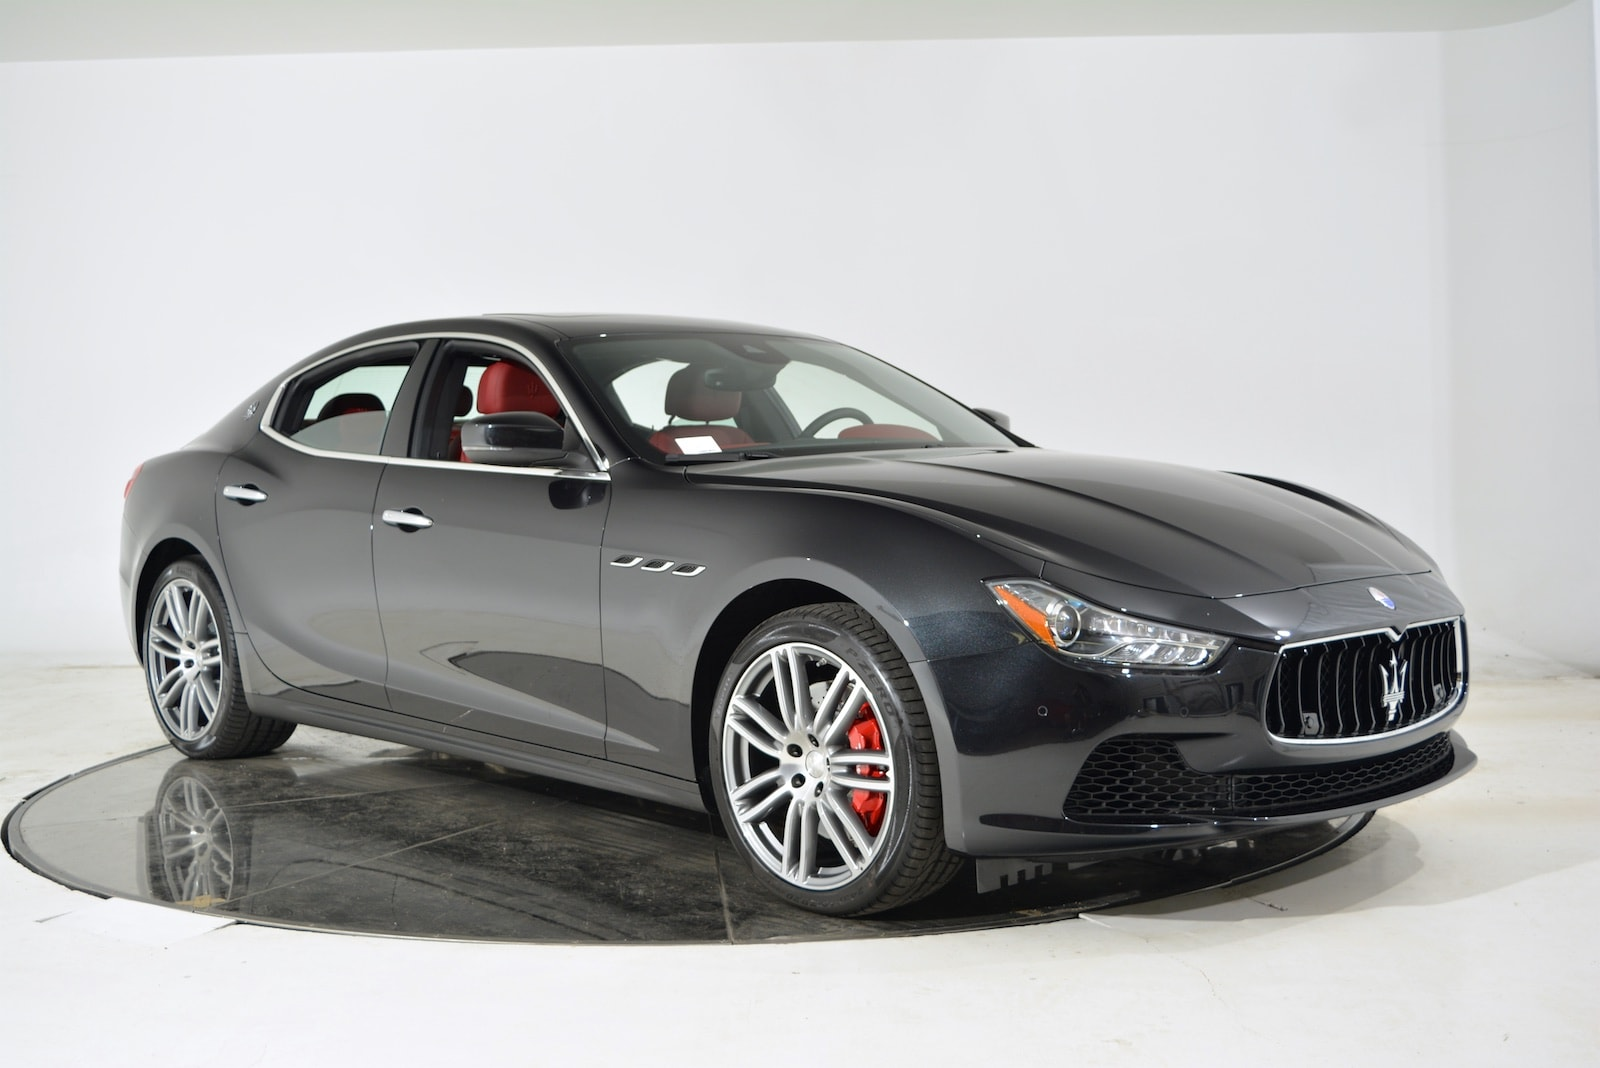 New 2017 Maserati Ghibli S For Sale Fort Lauderdale Fl Vin Zam57rss4h1216732